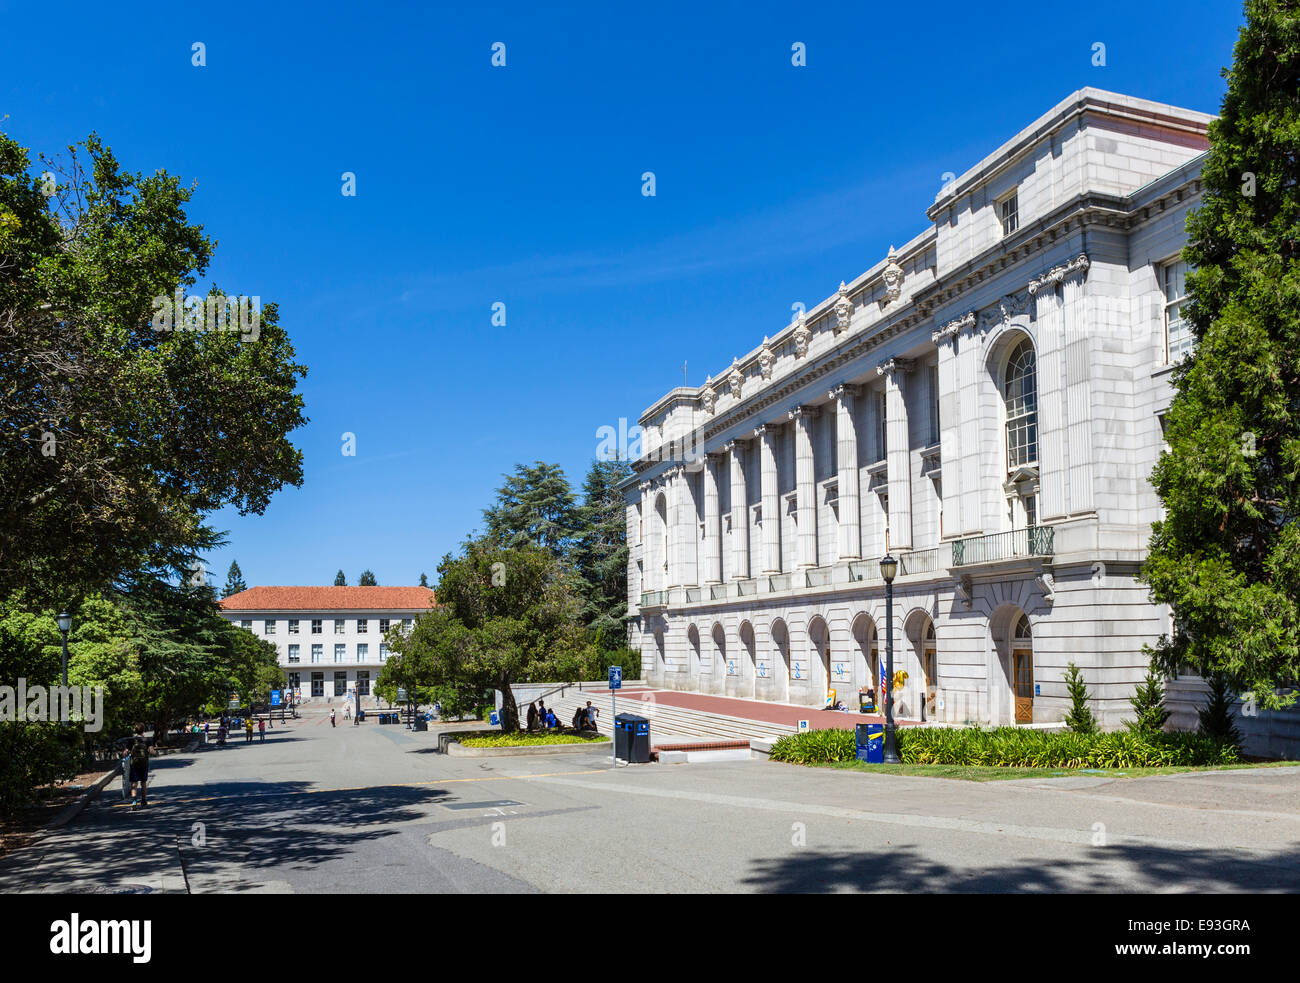 Wheeler Hall at the University of California Berkeley, Berkeley, California, USA - Stock Image